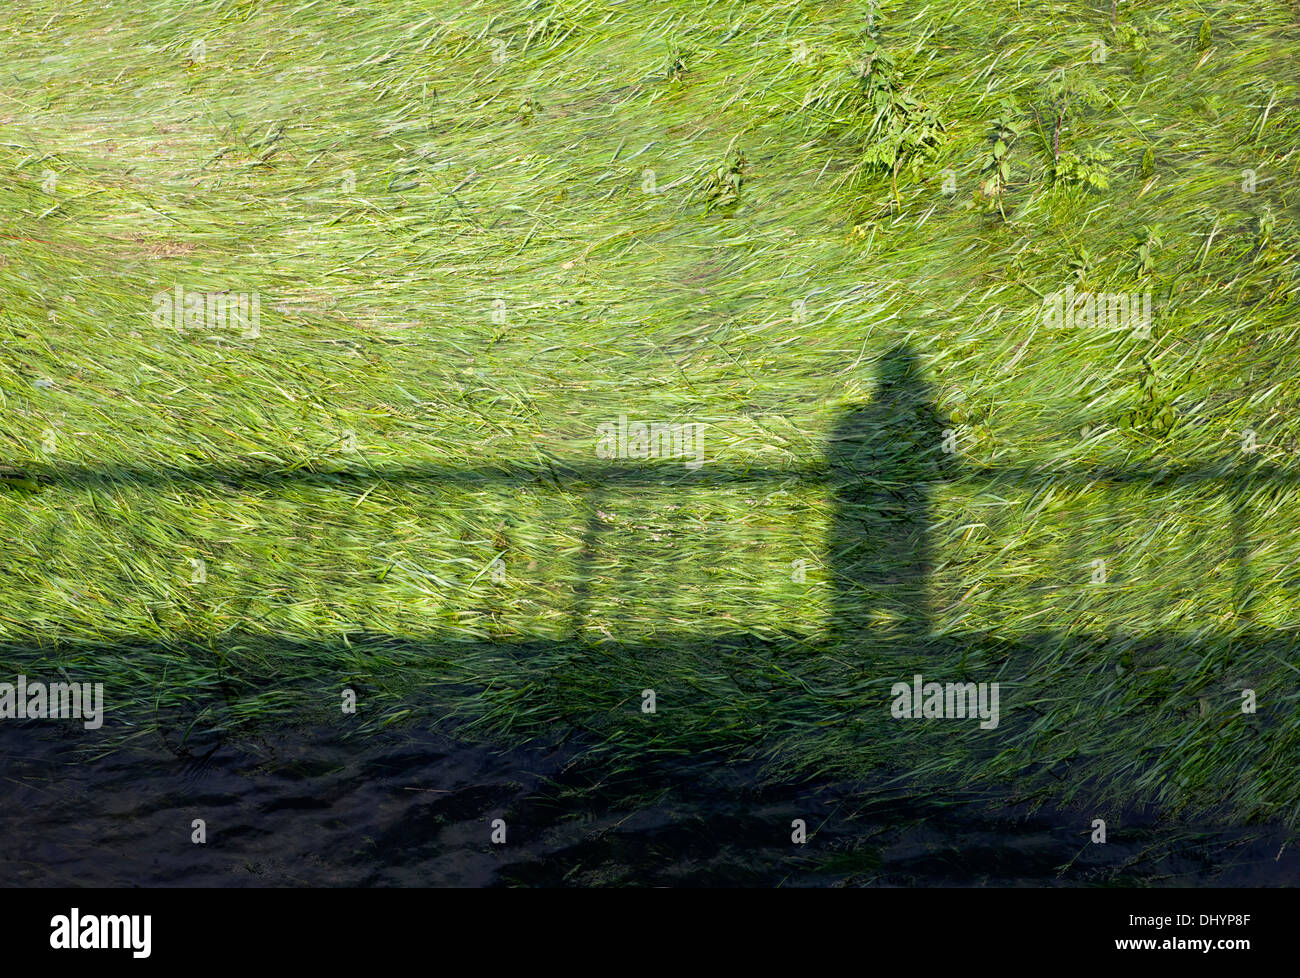 Shadow of a person and a fence - Stock Image